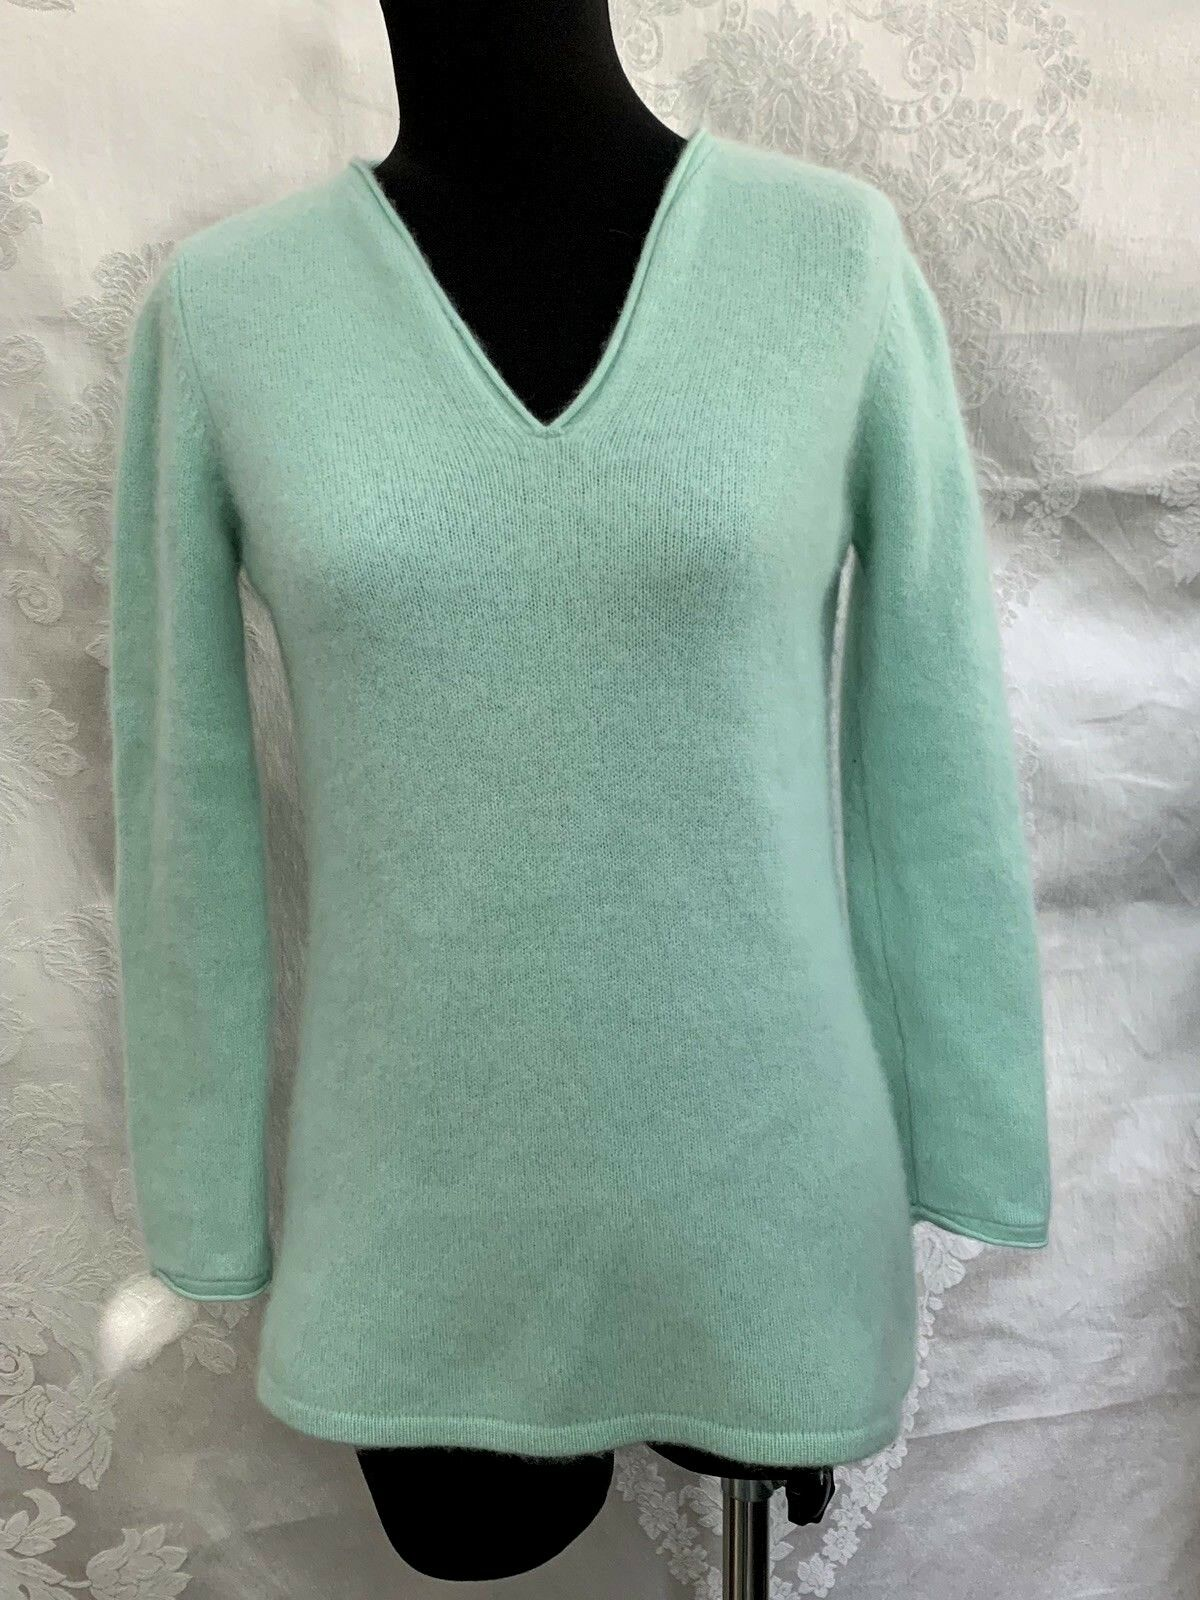 BLOOMINGDALE'S 100% cashmere sweater luxury luxury luxury soft SMALL SEAFOAM blueE GREEN FLUFFY bfe680